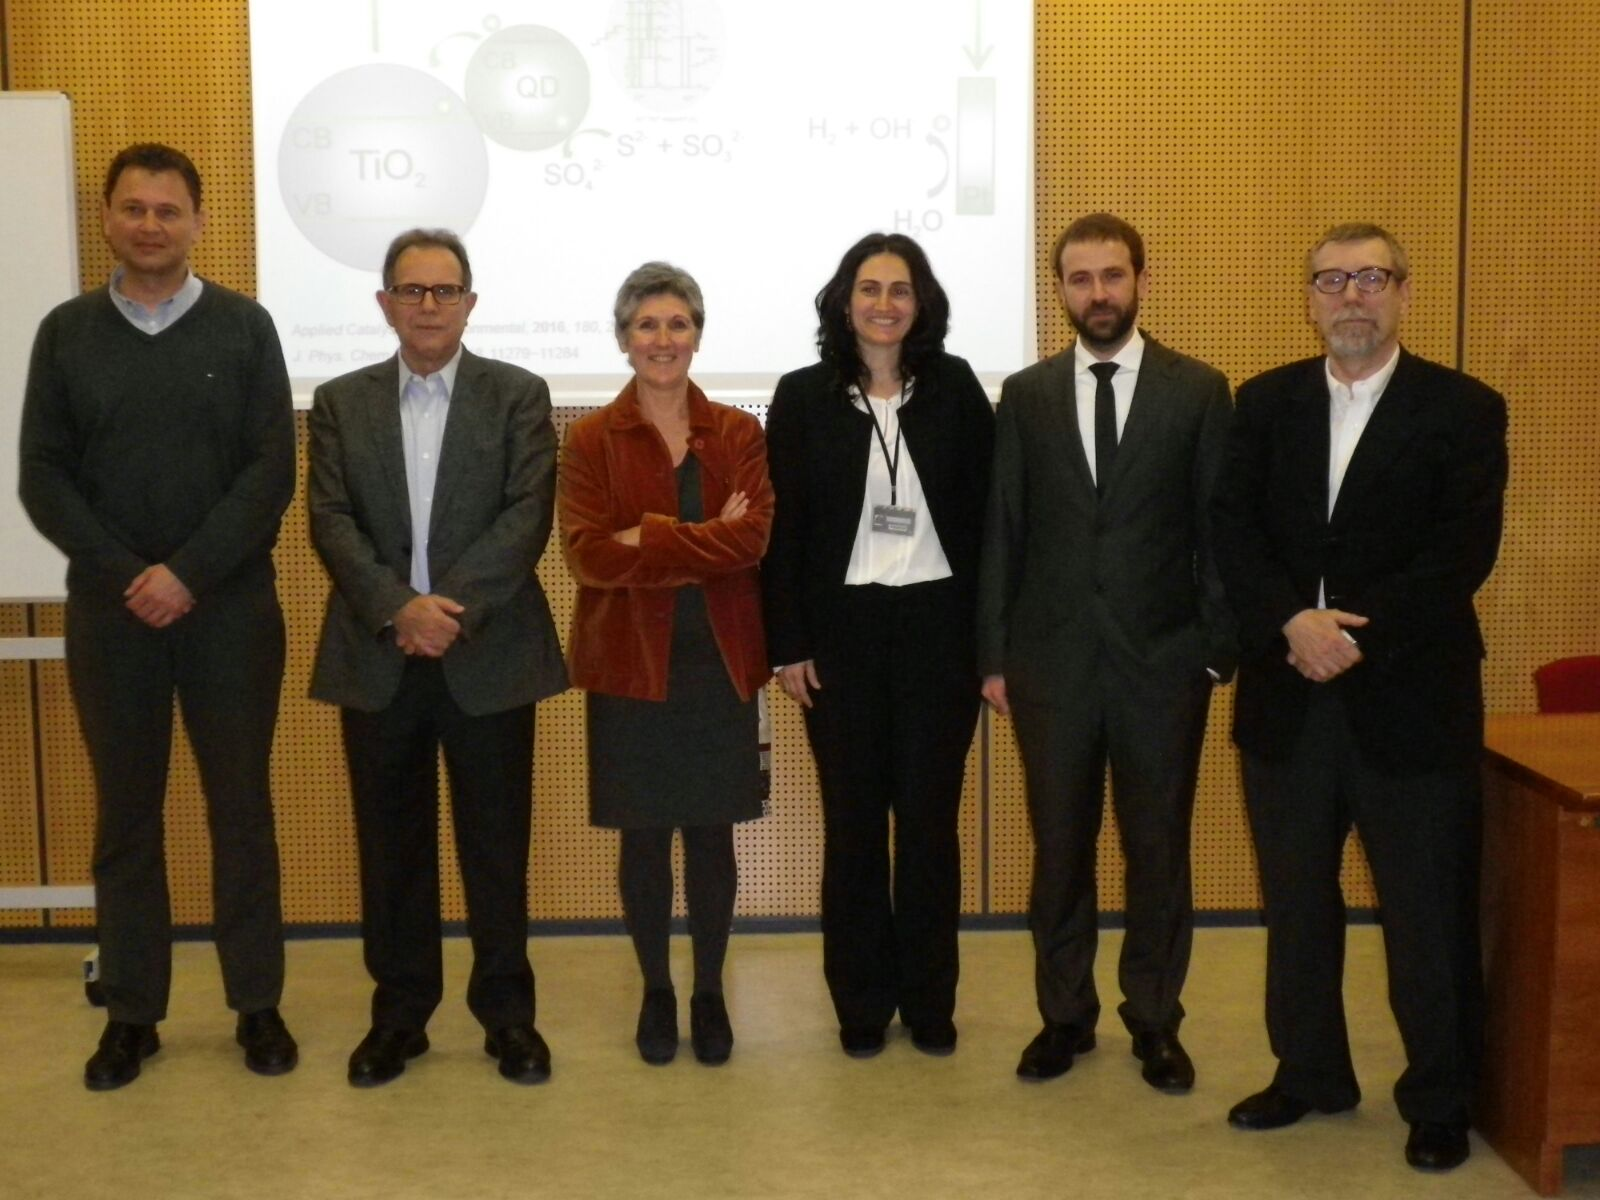 Phd Defense Committee